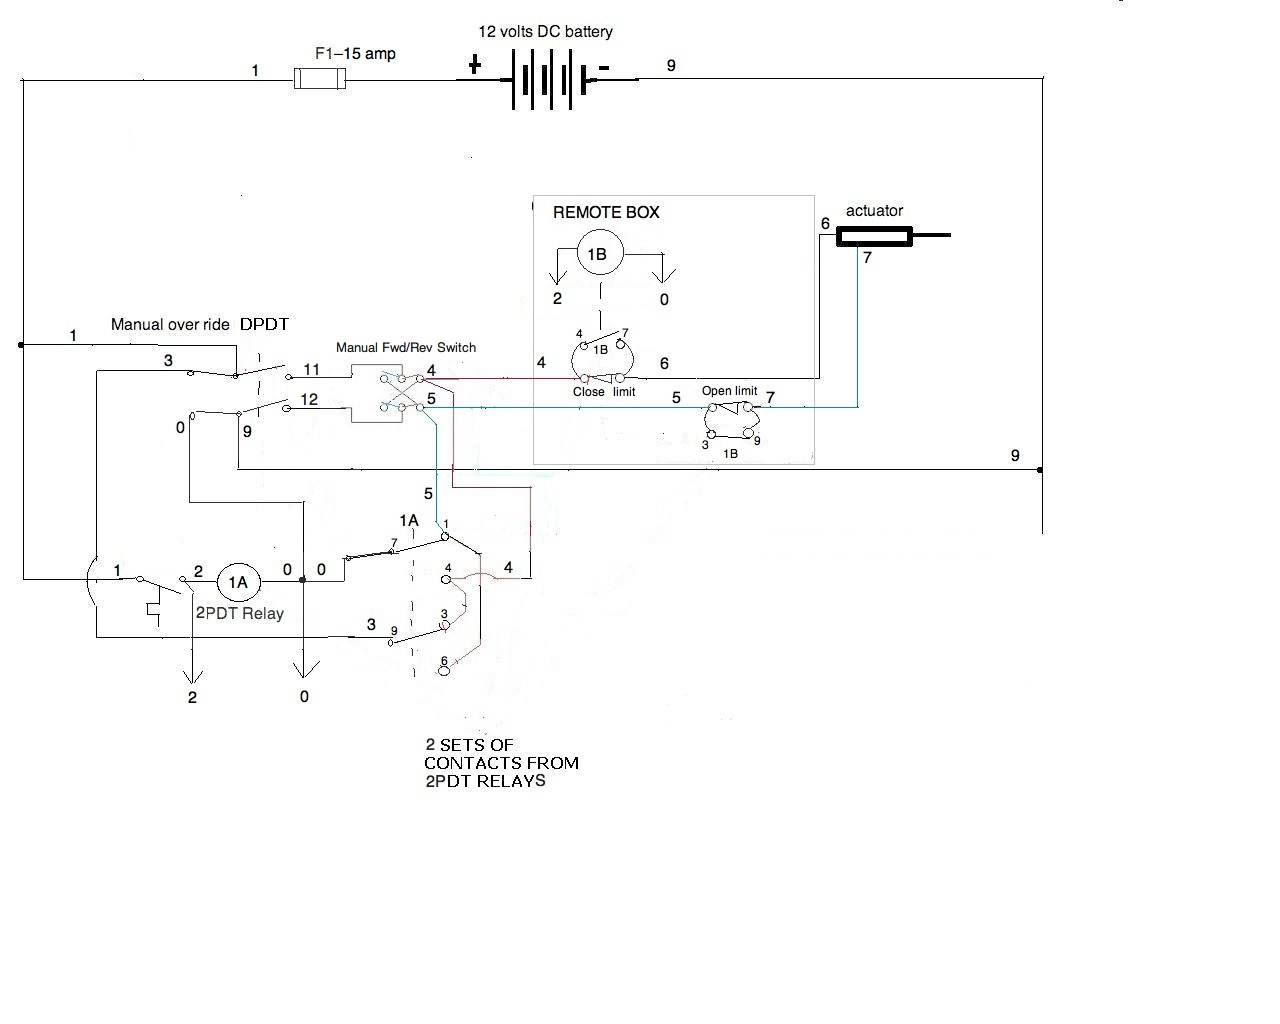 i need a wiring diagram for a 12v application all components are rh justanswer com